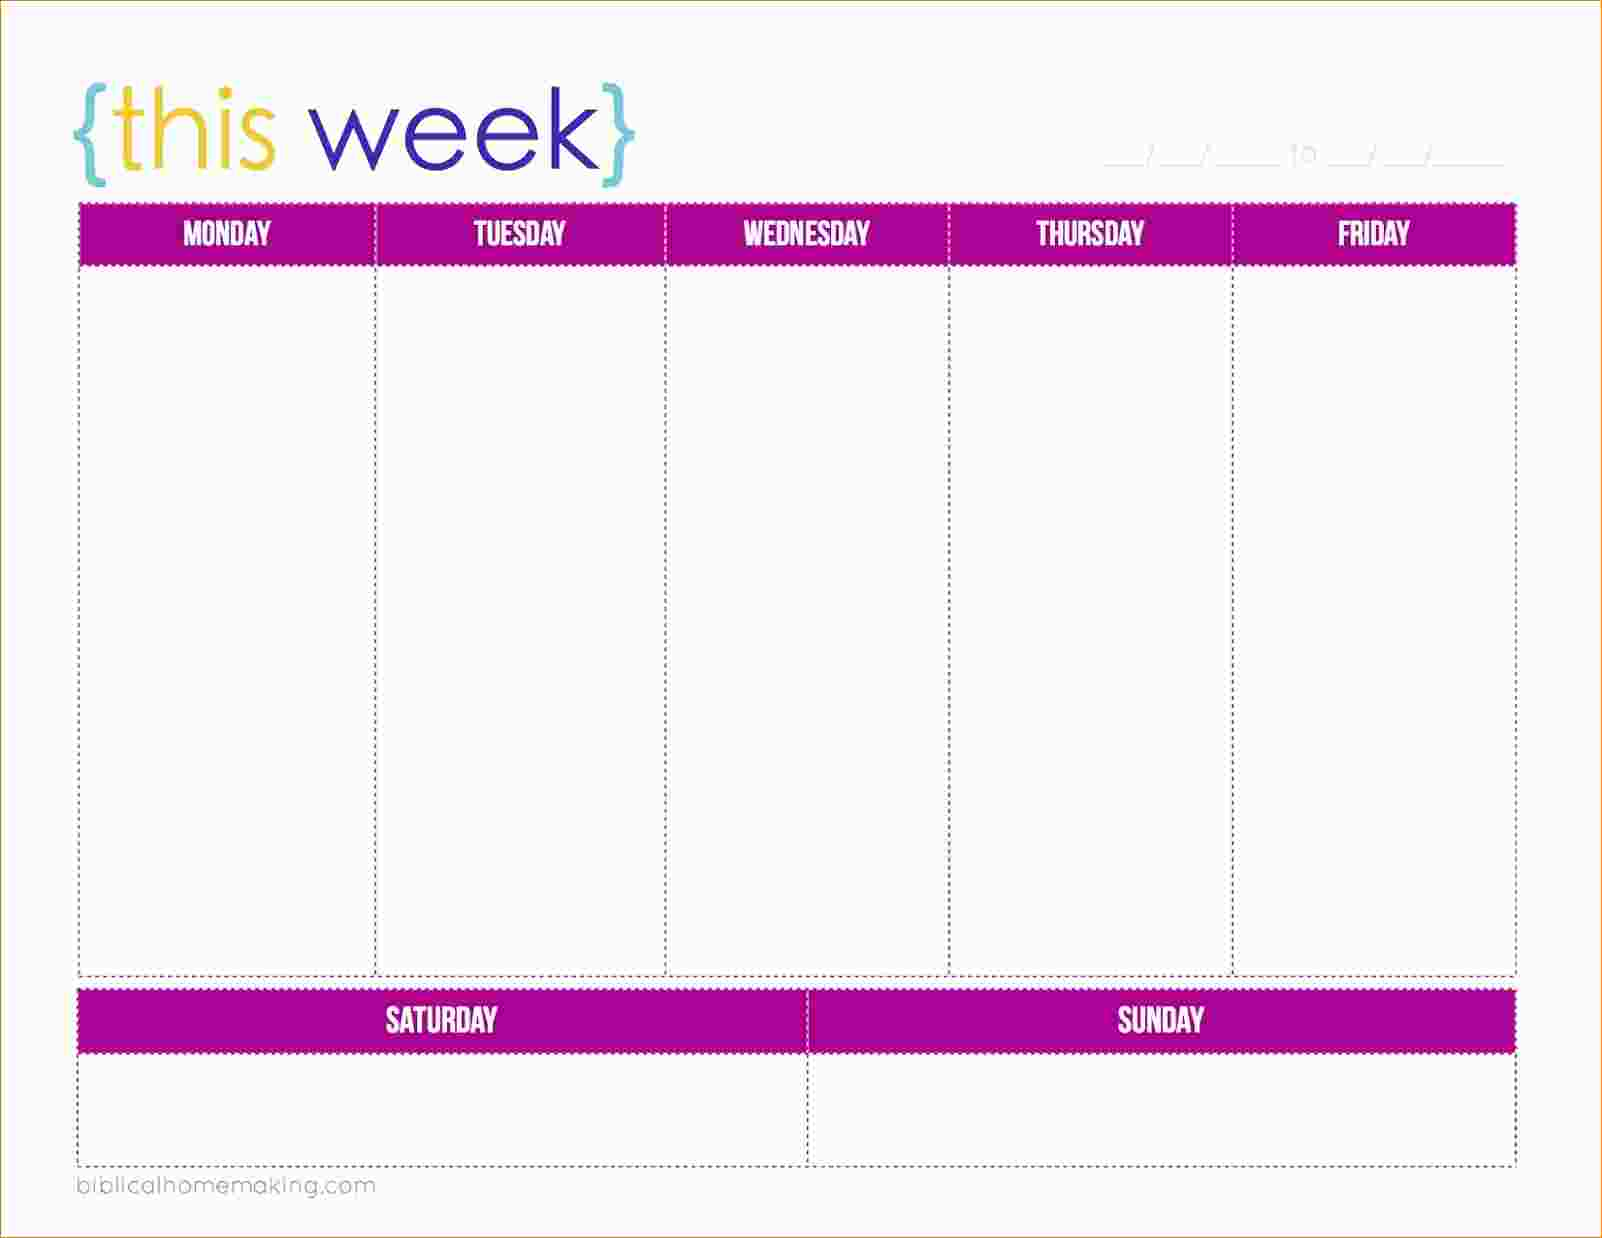 Daily Planner Printable - Daily Organizer Template